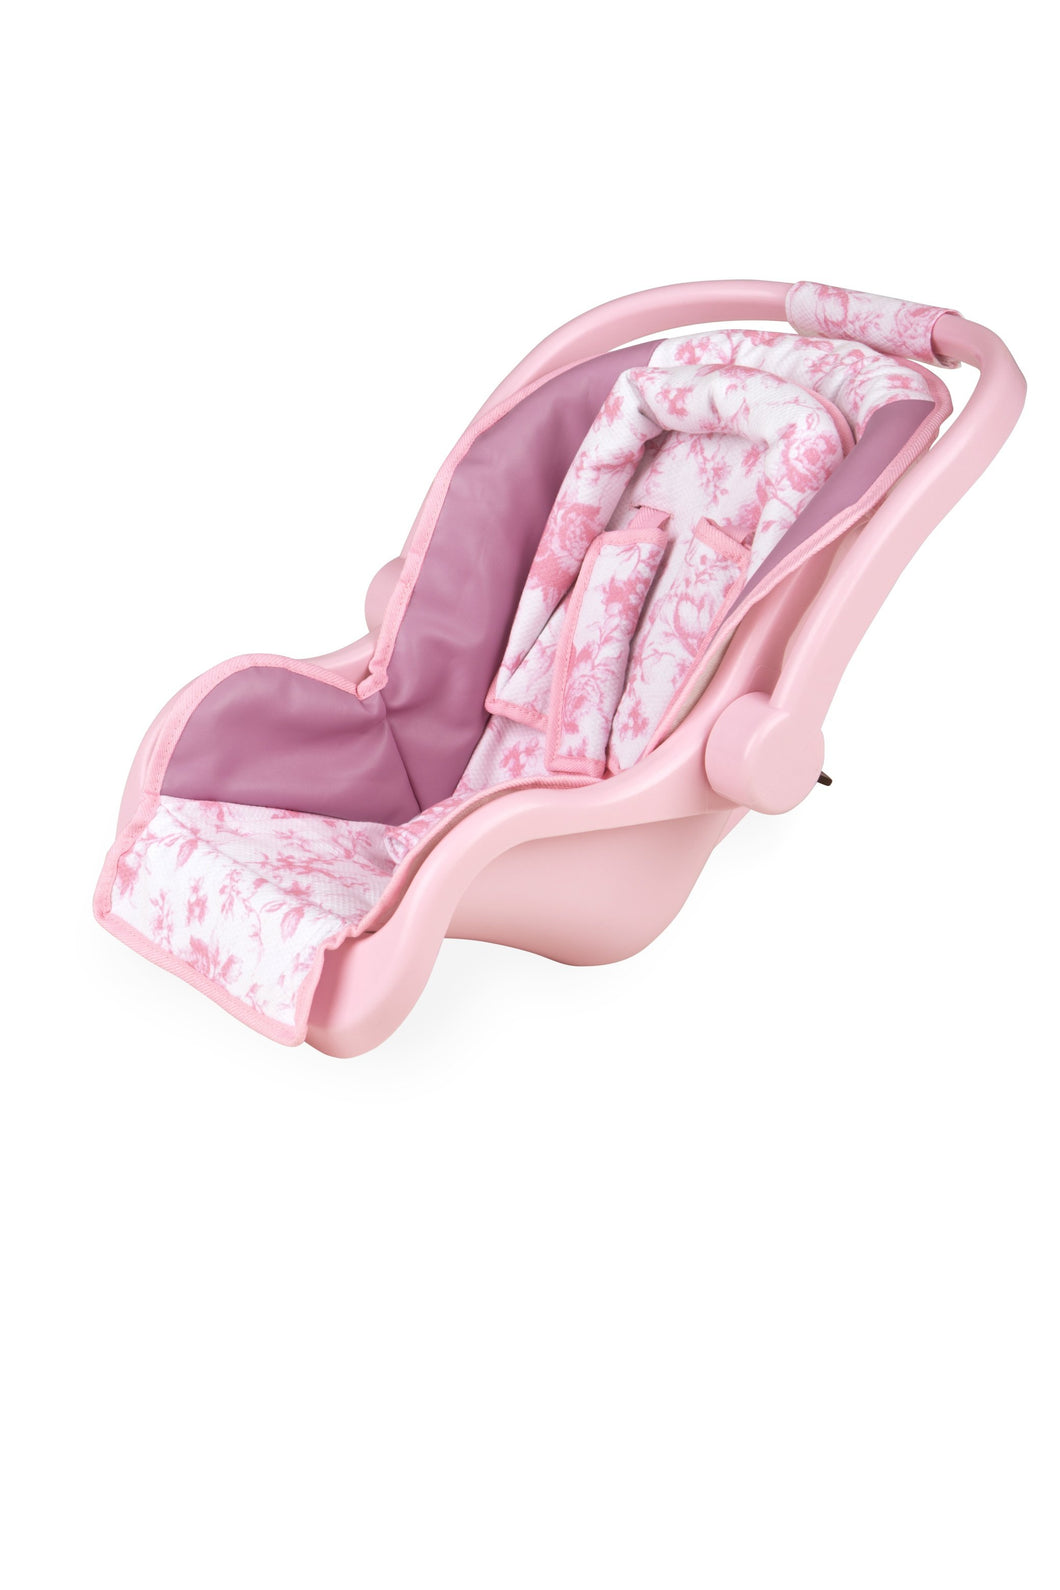 dolls car seat - Ctwinkles